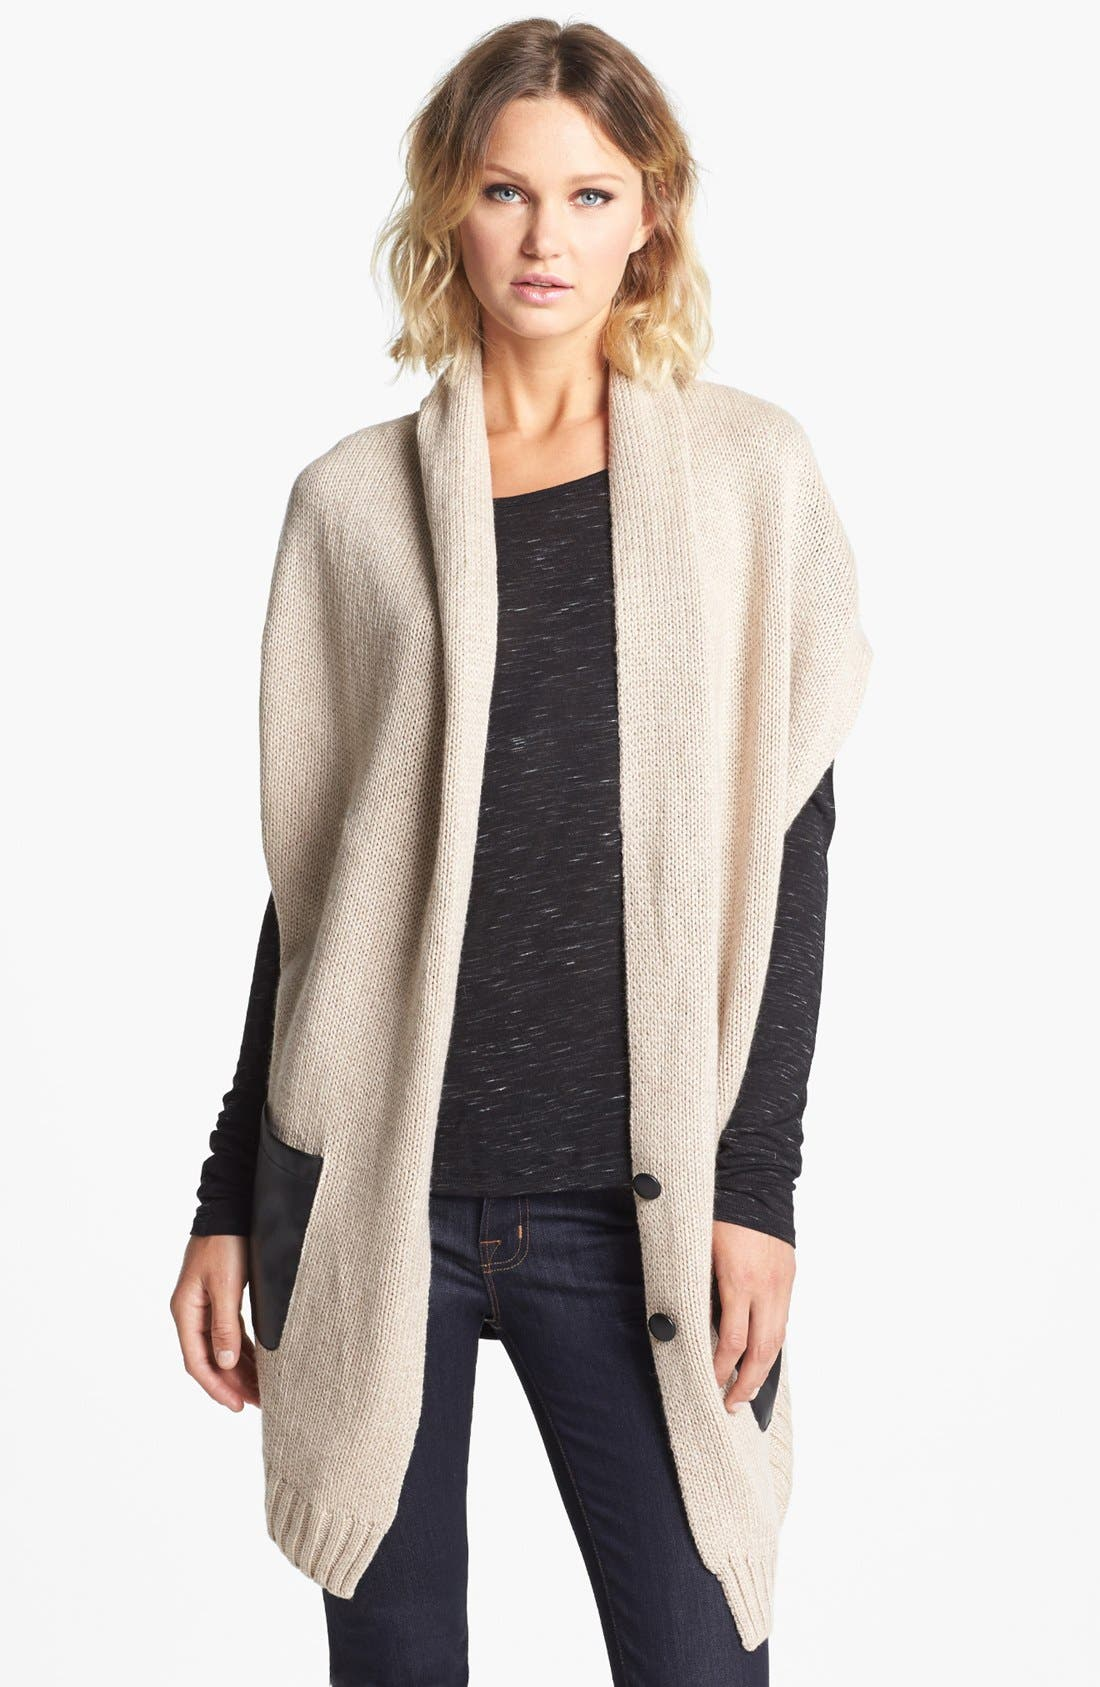 Main Image - Nordstrom Knit Vest With Faux Leather Pockets